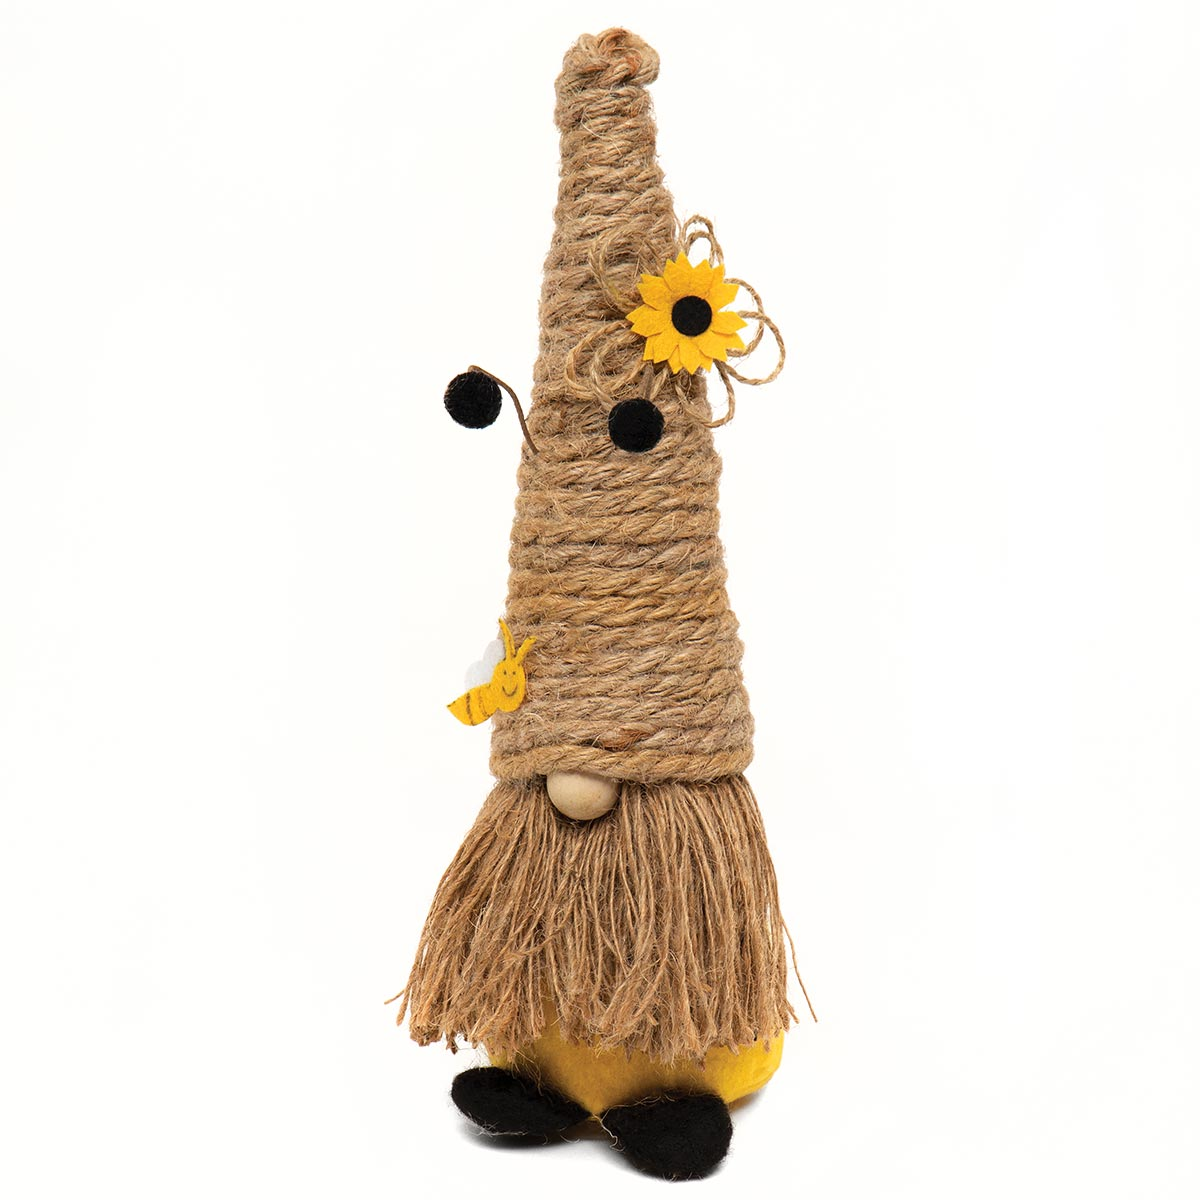 HUMBLE GNOME WITH JUTE BEE SKEP HAT, ANTENNA, WOOD NOSE AND